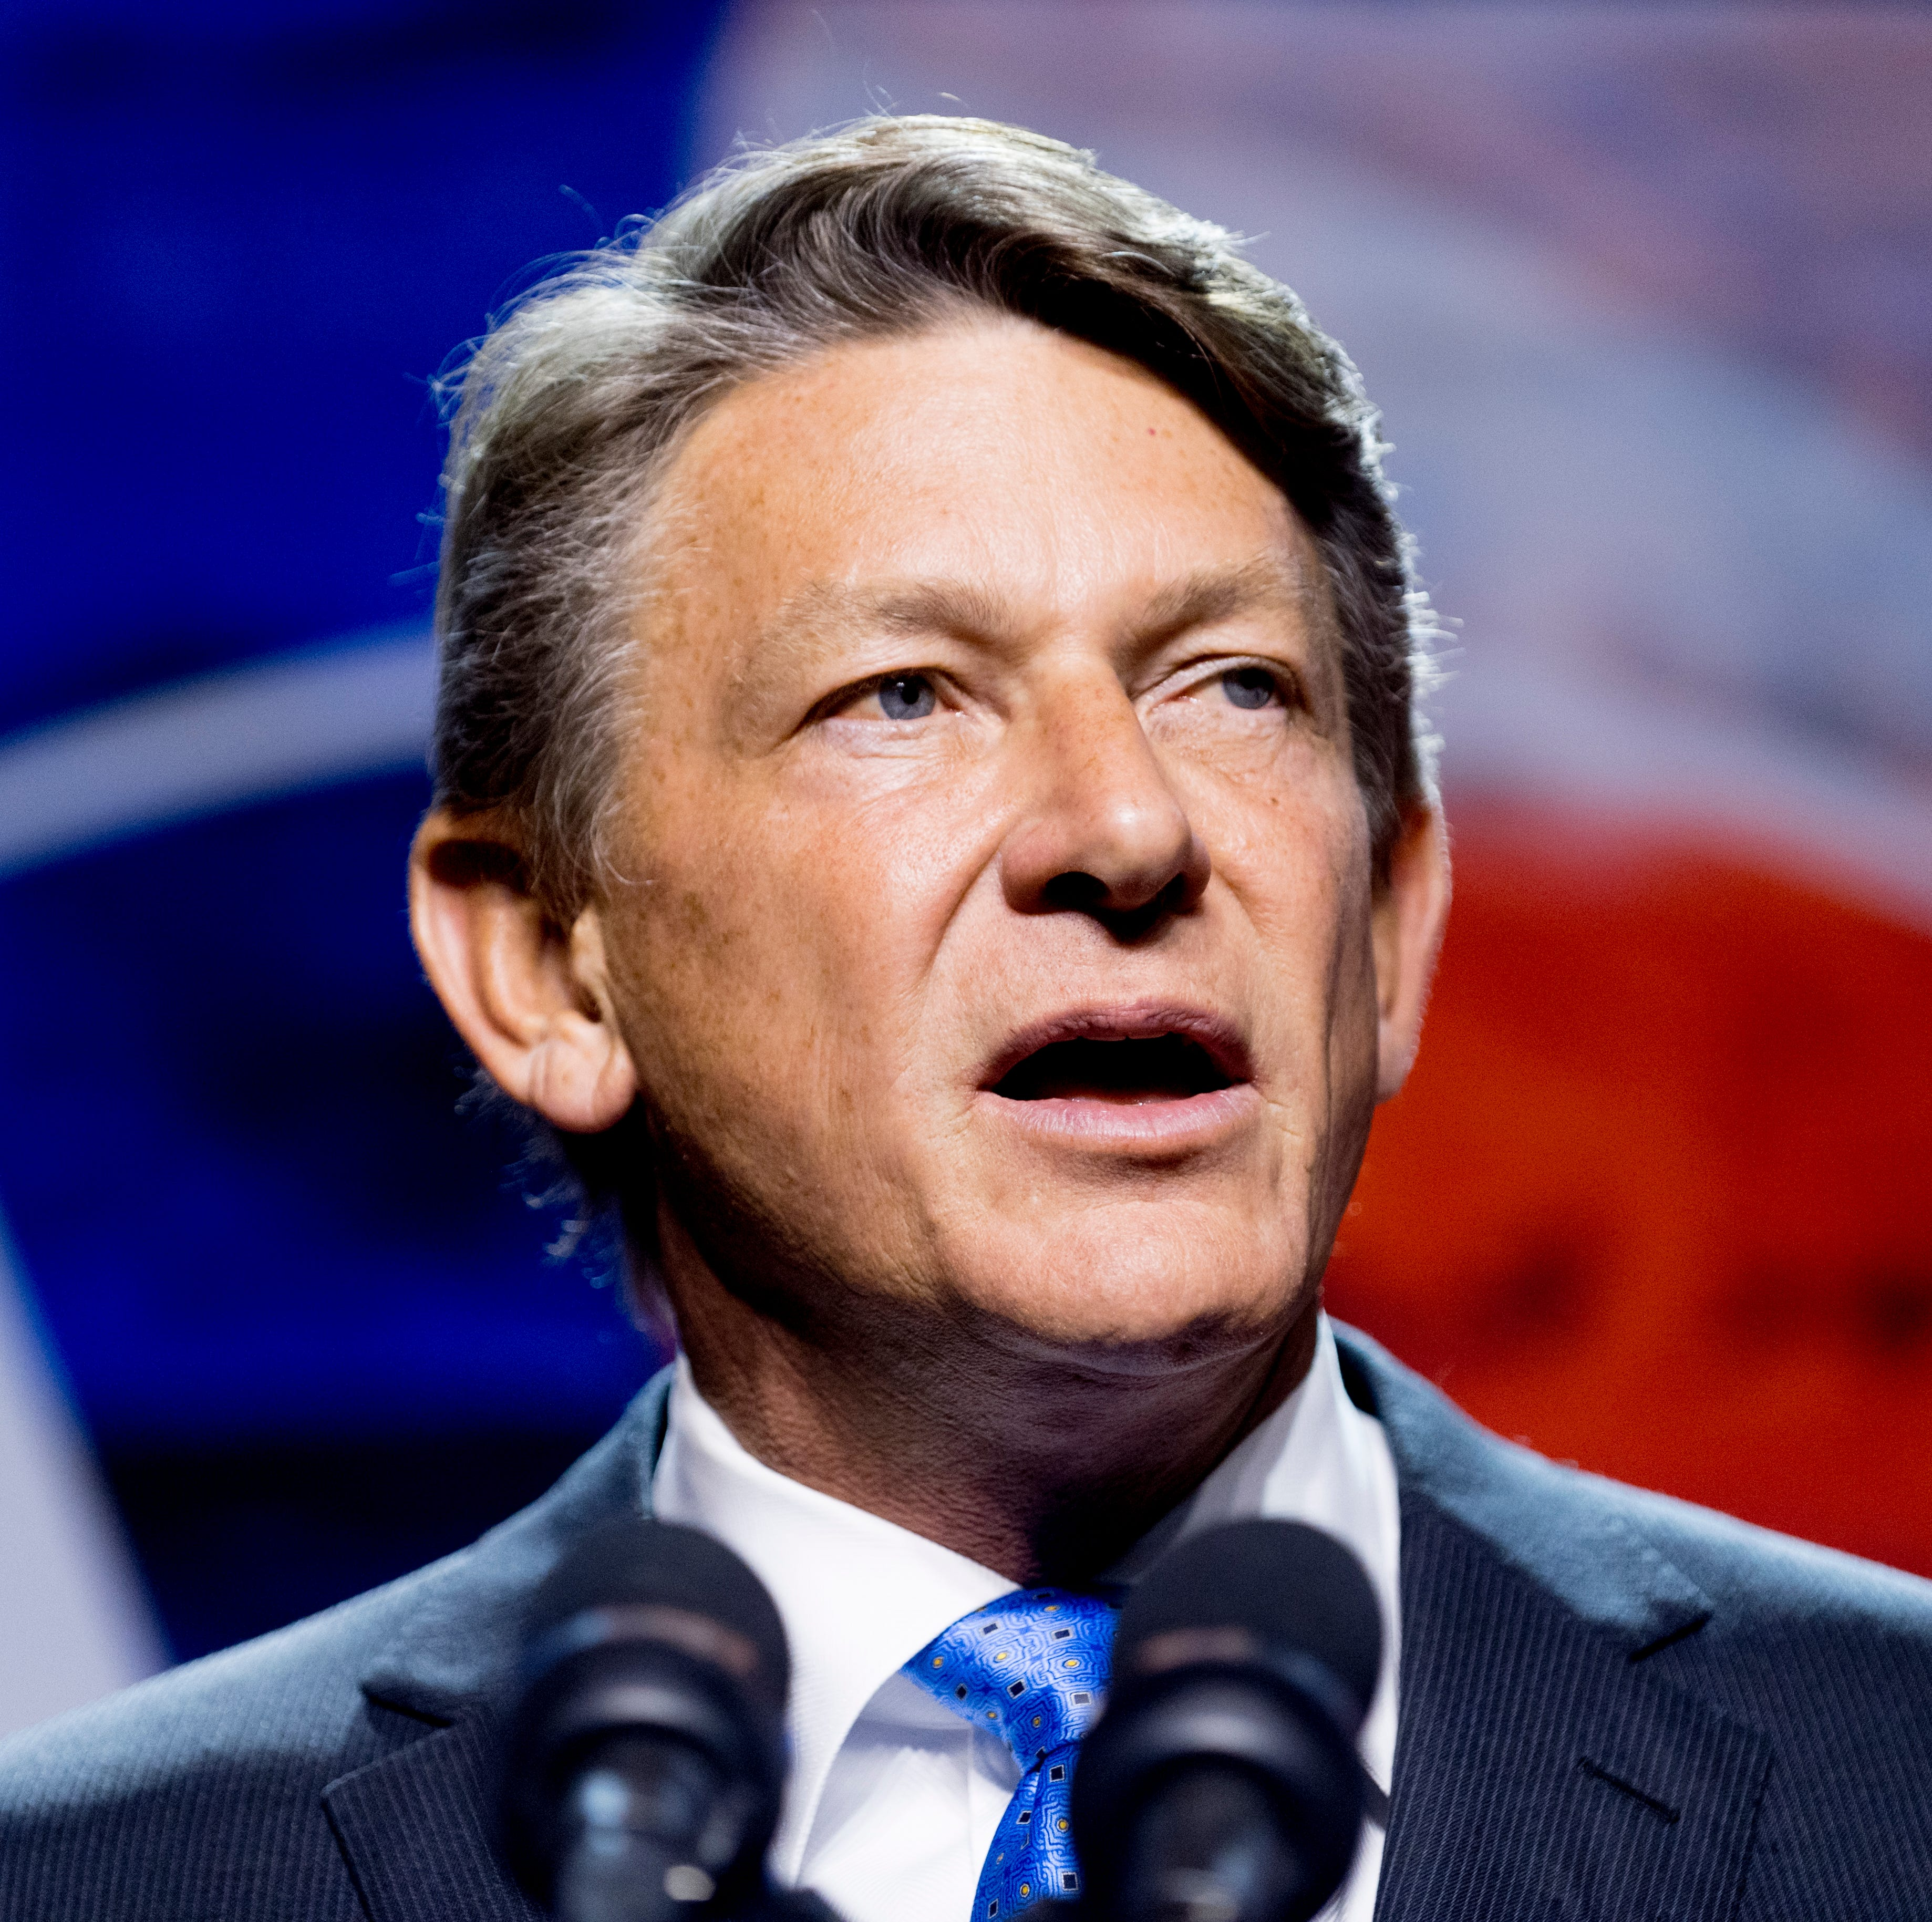 Randy Boyd unanimously approved as University of Tennessee's interim president amid student protests